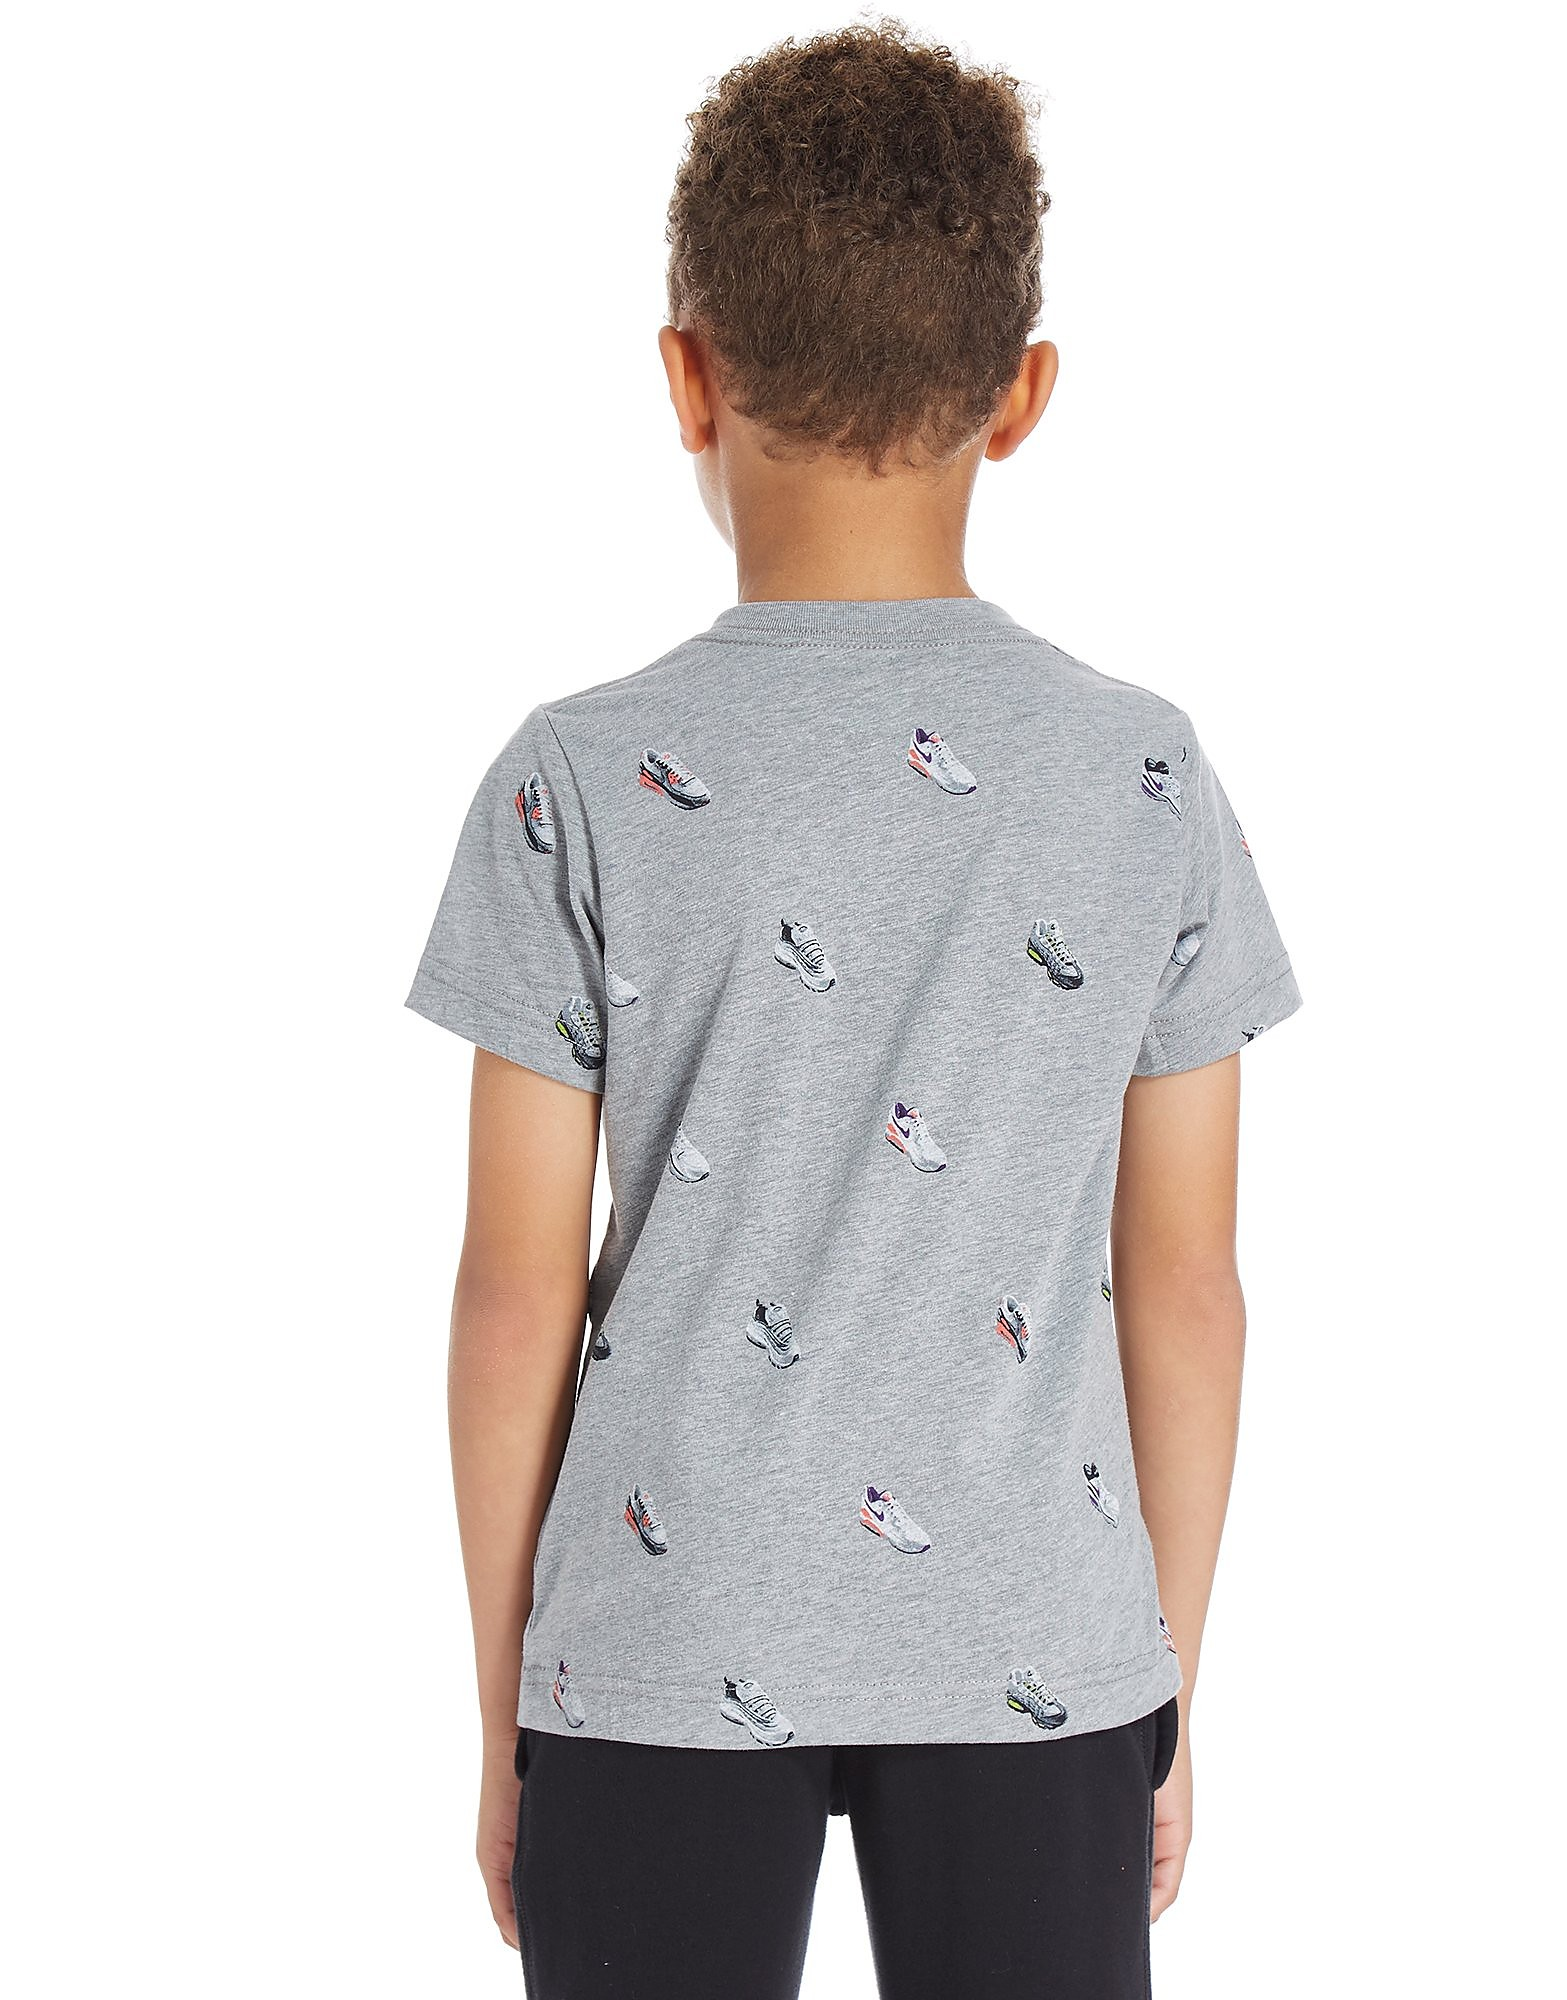 Nike camiseta Air Shoe Print infantil